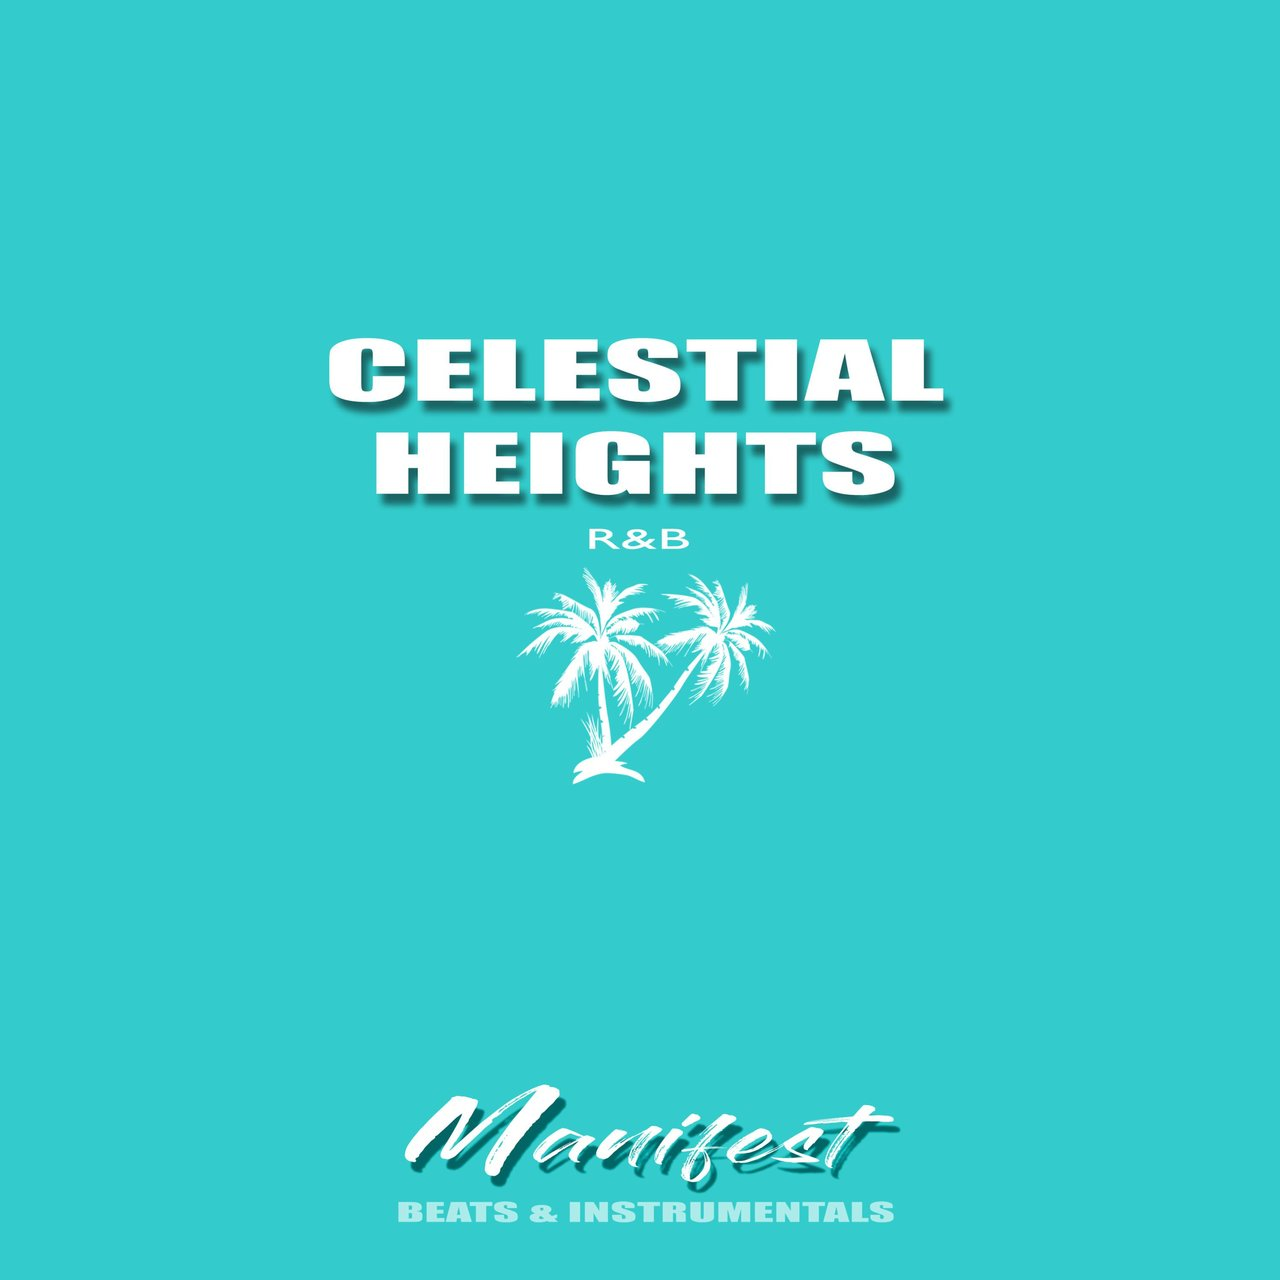 Celestial Heights